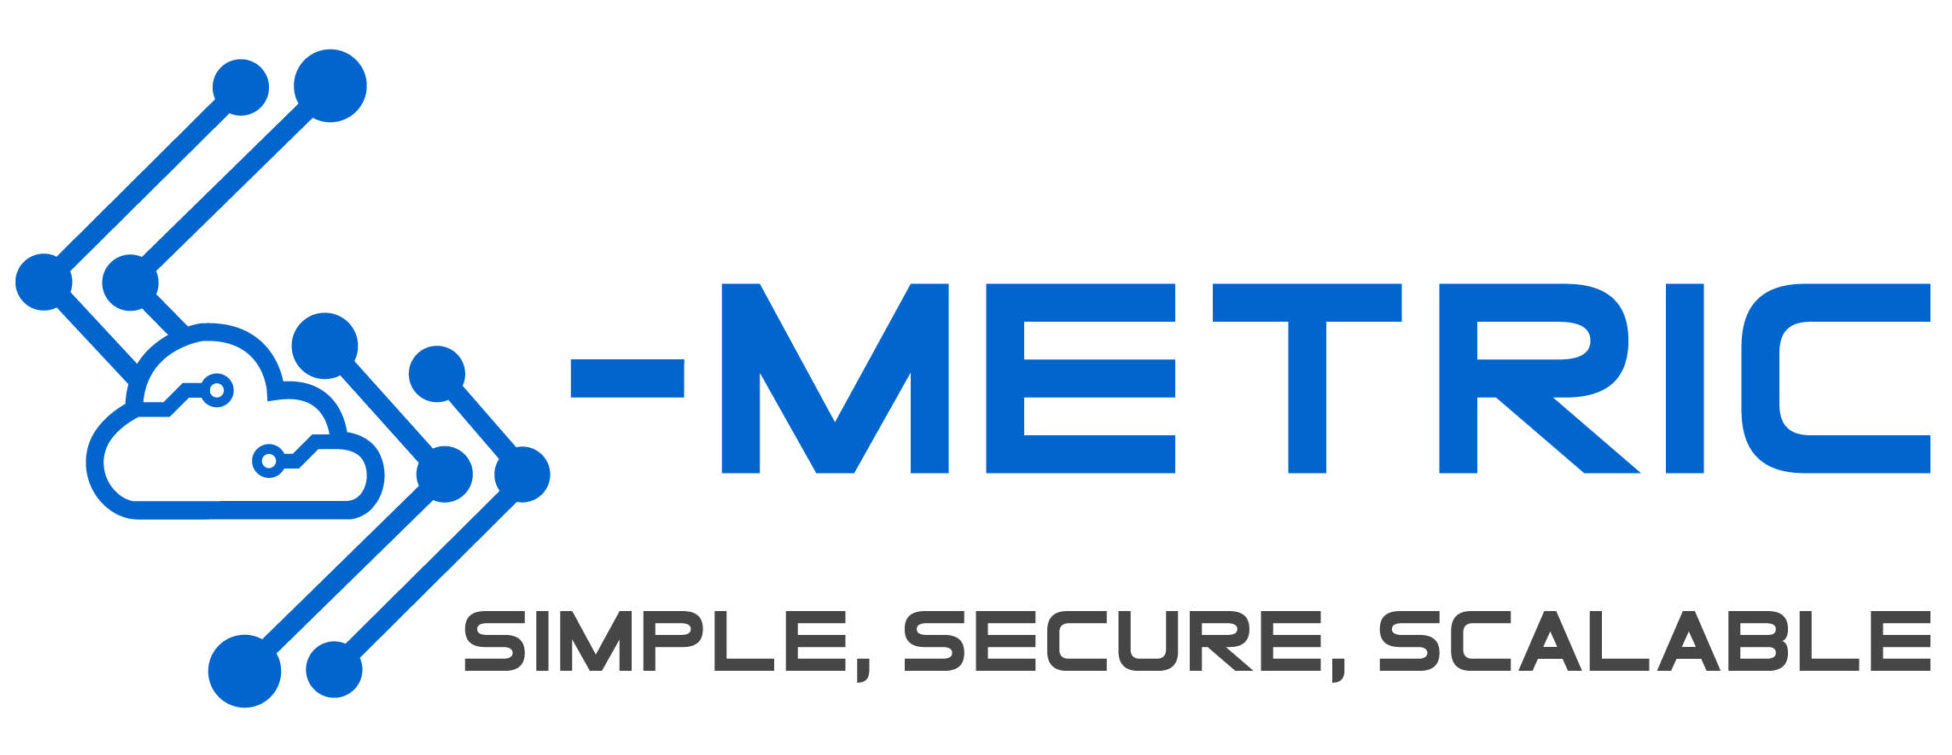 Welcome to S-Metric